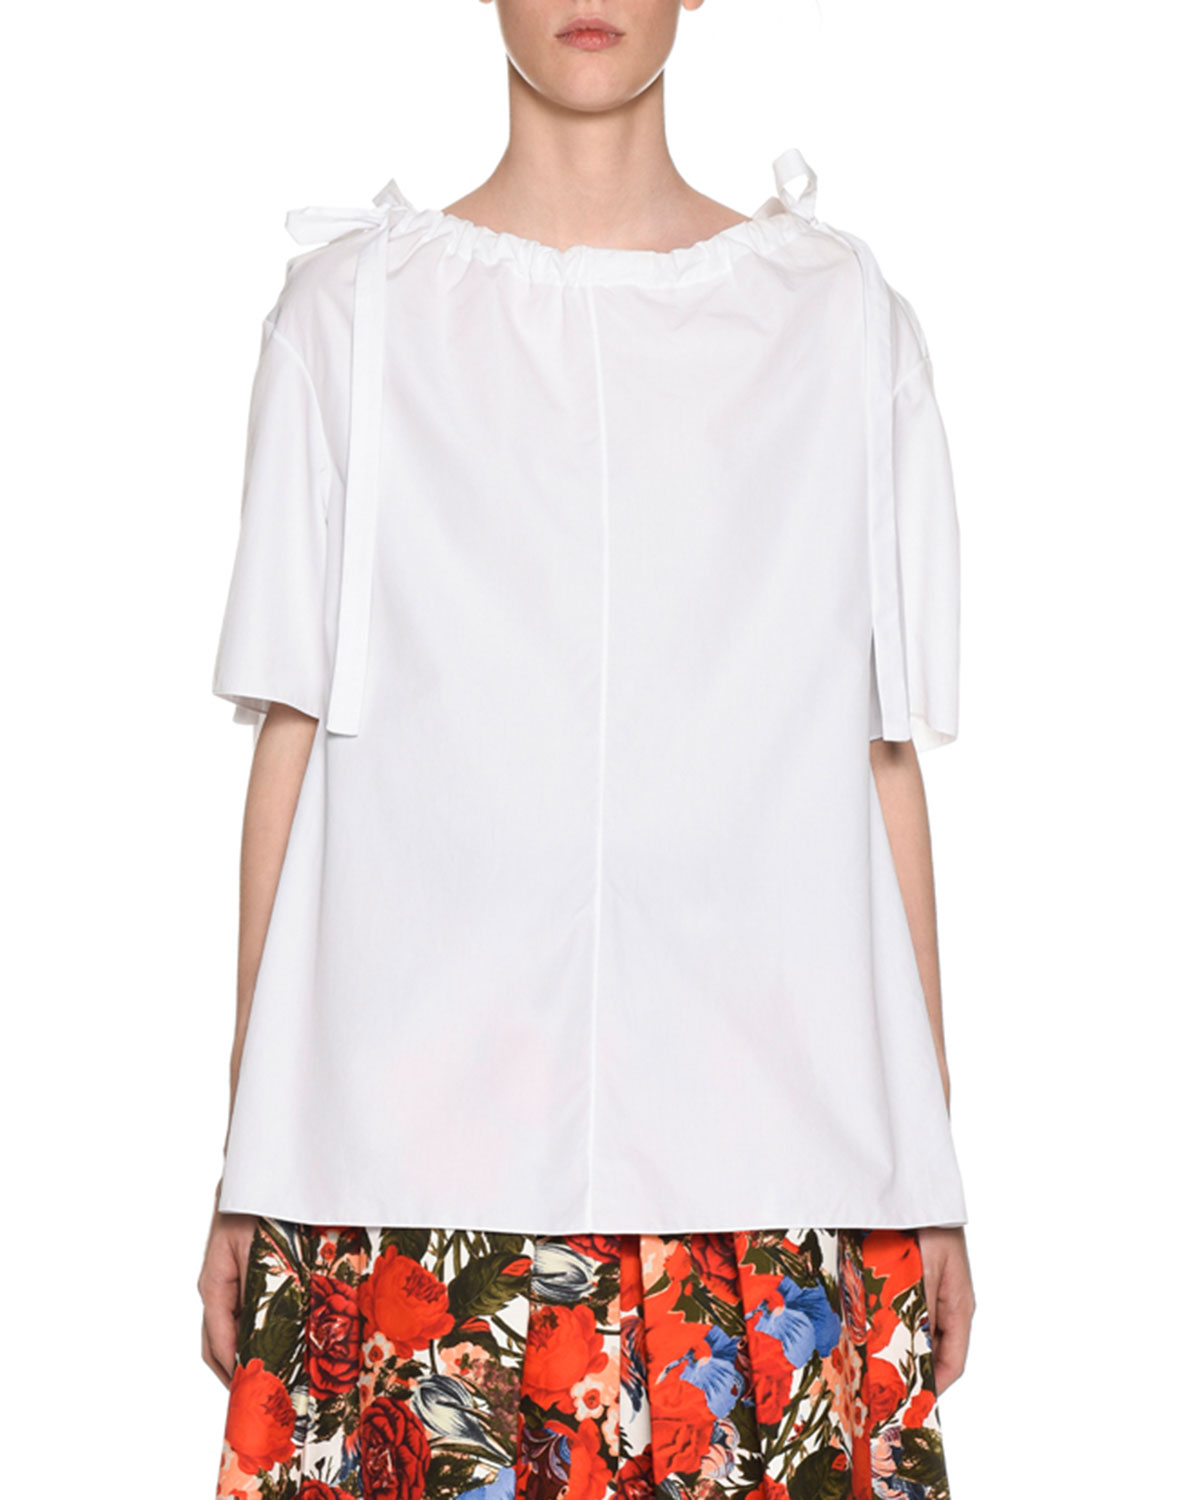 MARNI Oversized Tie-Detailed Gathered Cotton-Poplin Blouse in White